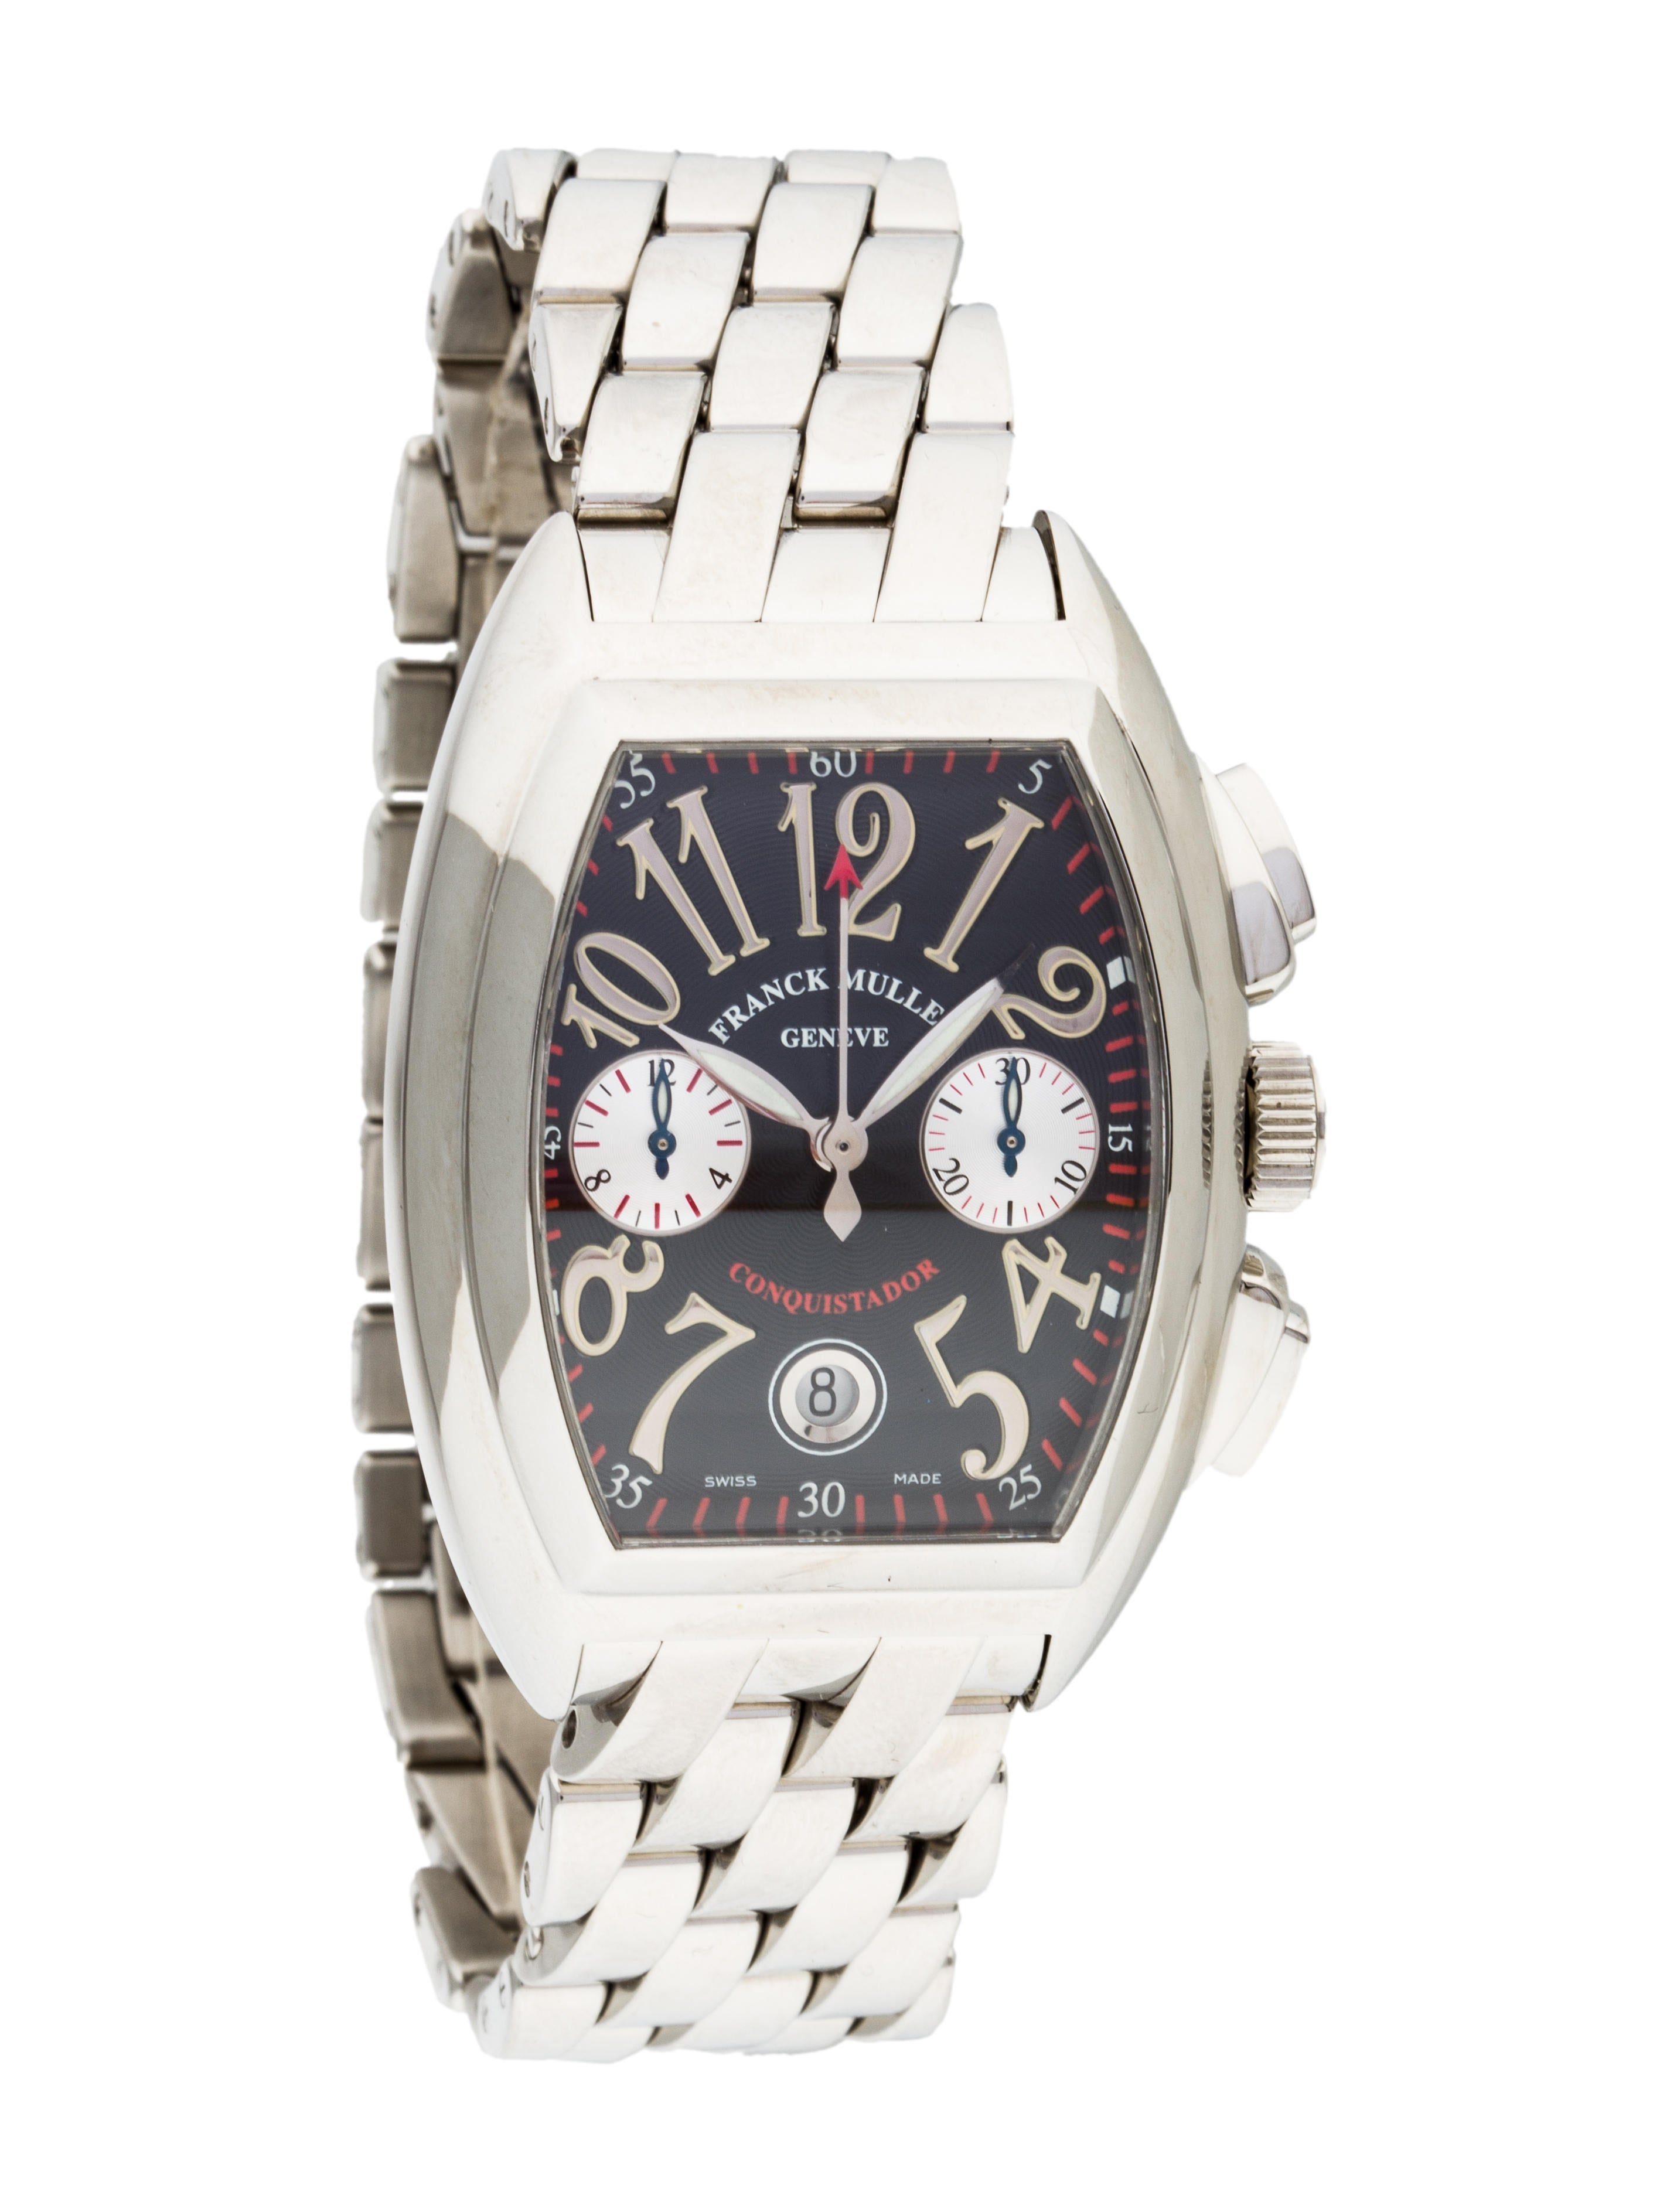 Franck muller conquistador watch bracelet frm20361 the realreal for Franck muller watches